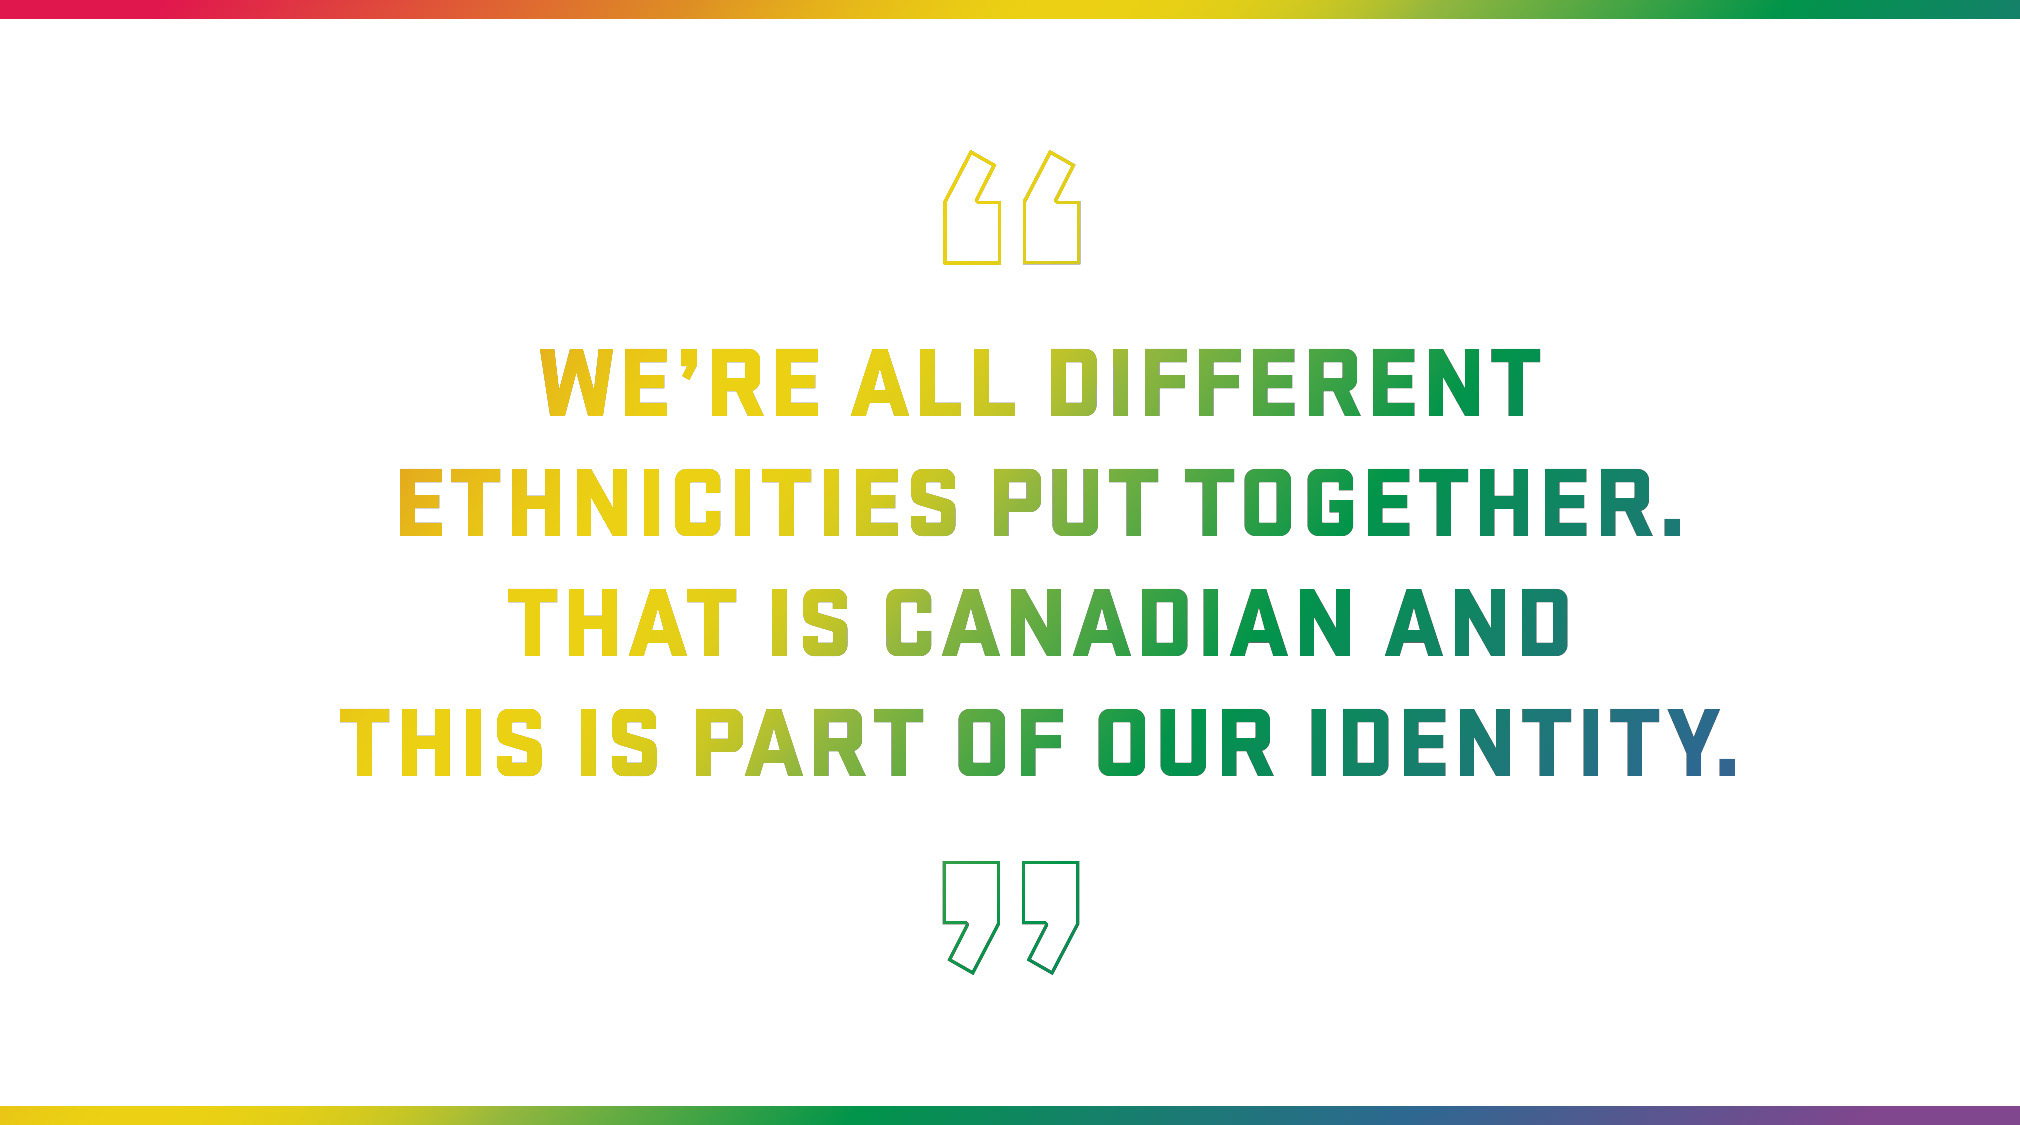 Block Quote: We're all different ethnicities put together. That is Canadian and this is part of our identity.